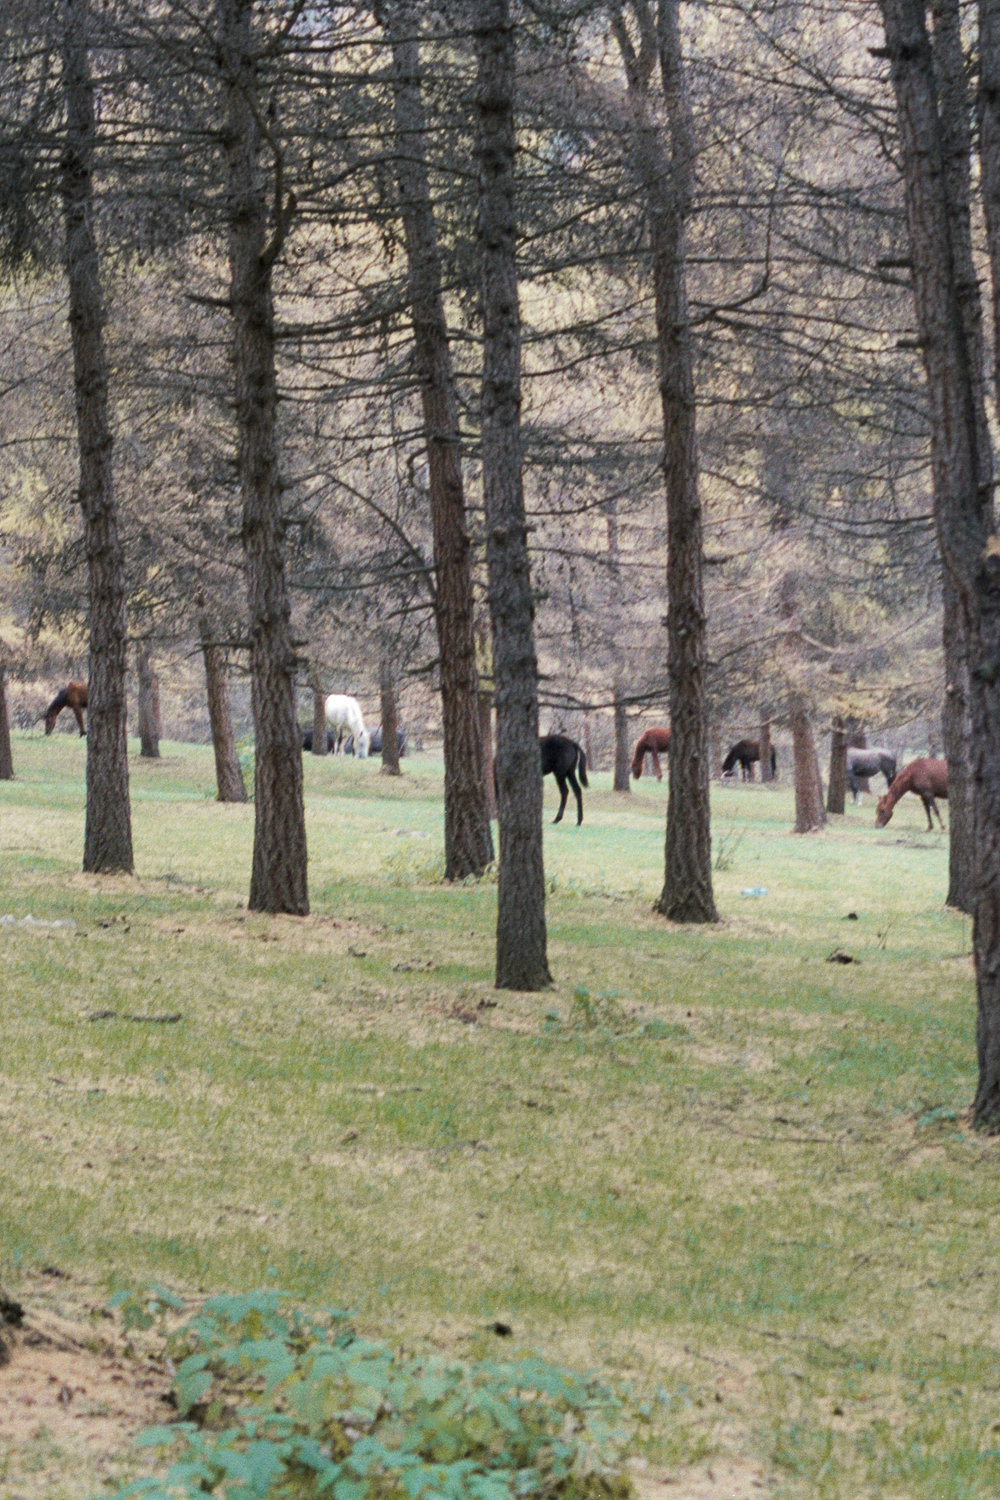 Horses & Trees | Portraits from Kyrgyzstan by Celine Meunier - Faune